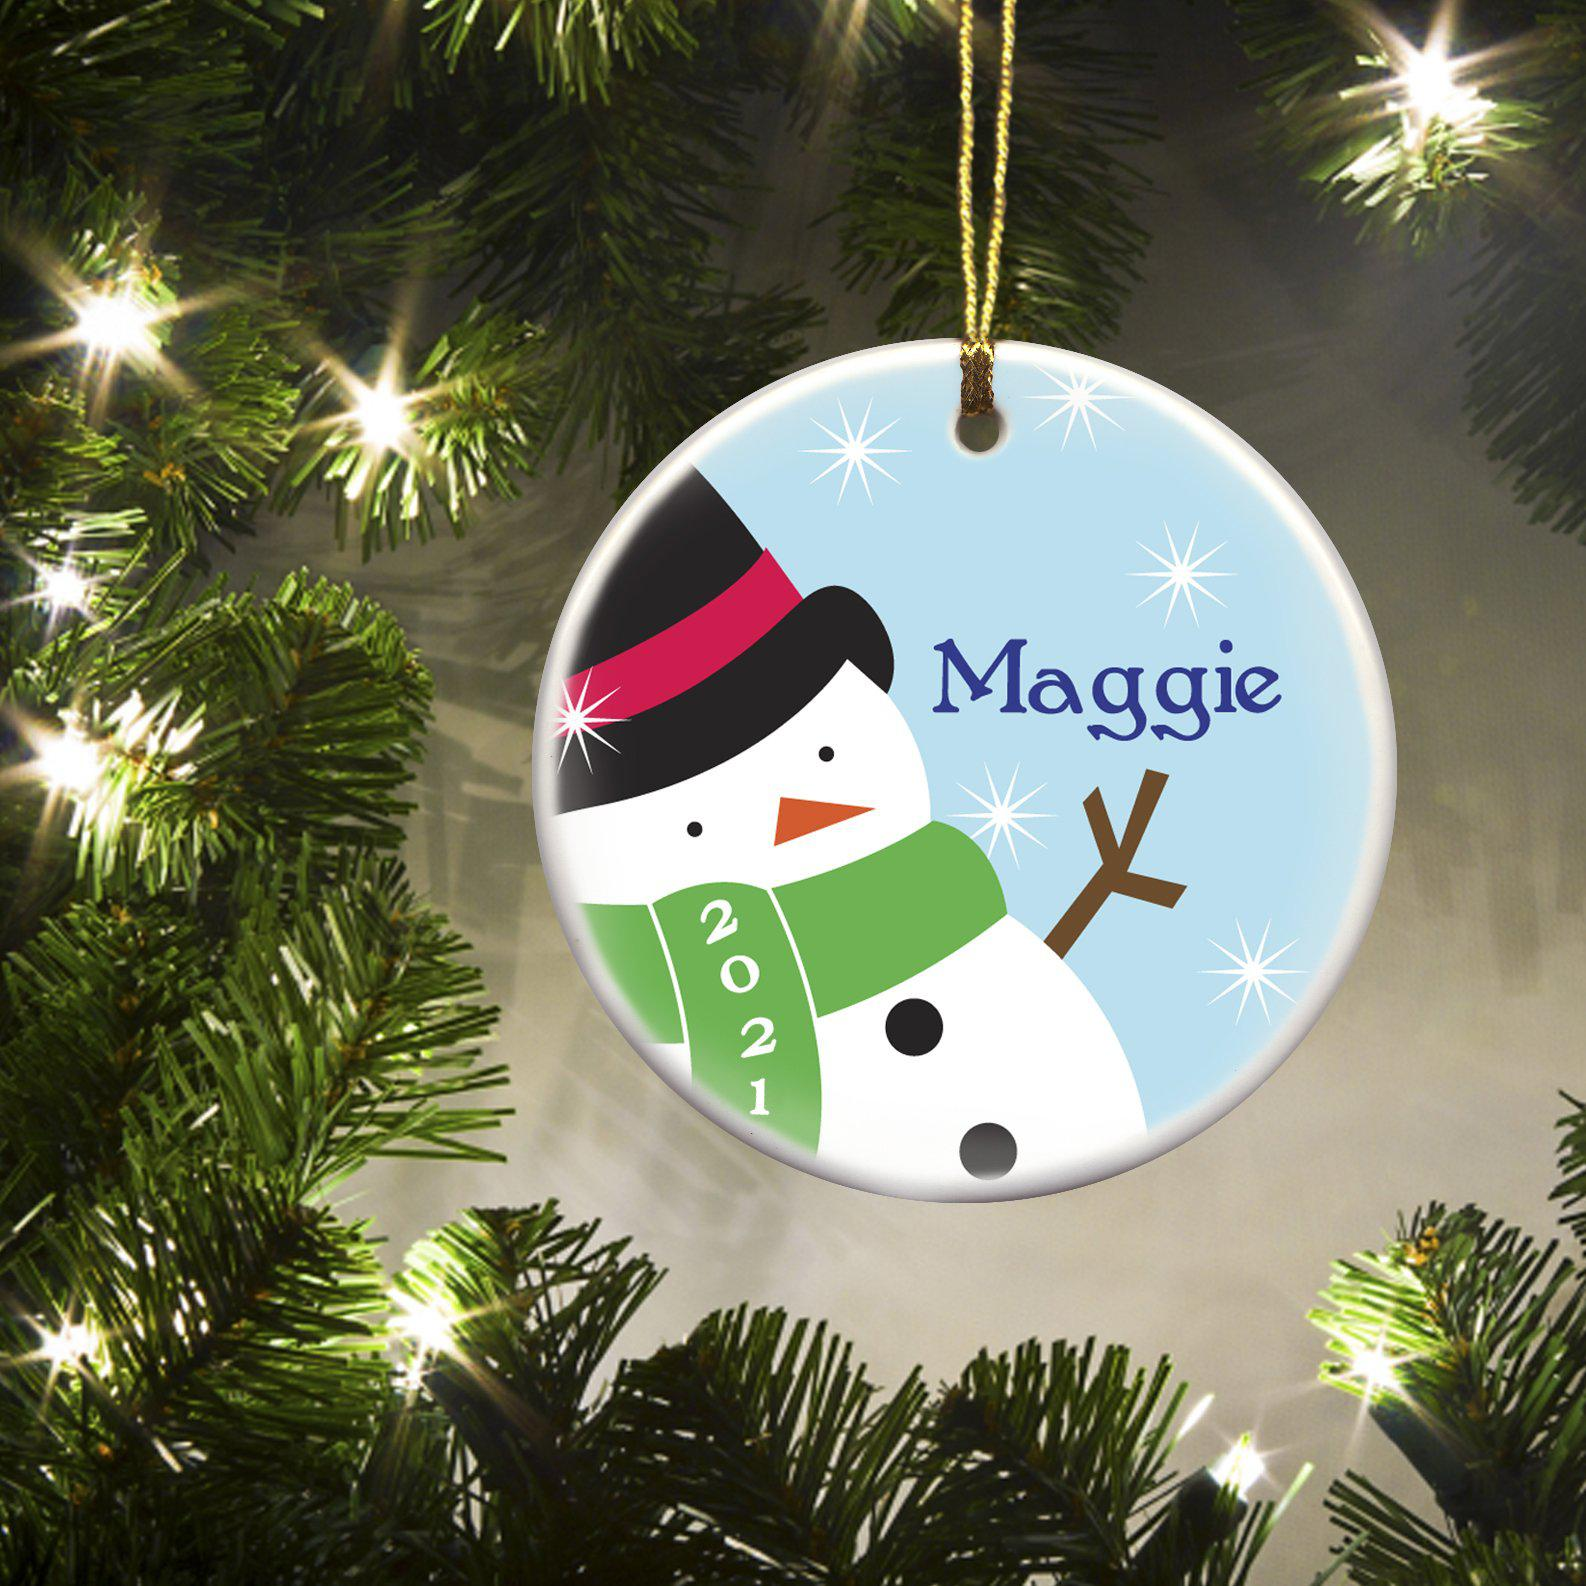 ornaments christmas personalized ornament ceramic snowman gifts let snow child holiday kristmas arttowngifts any list